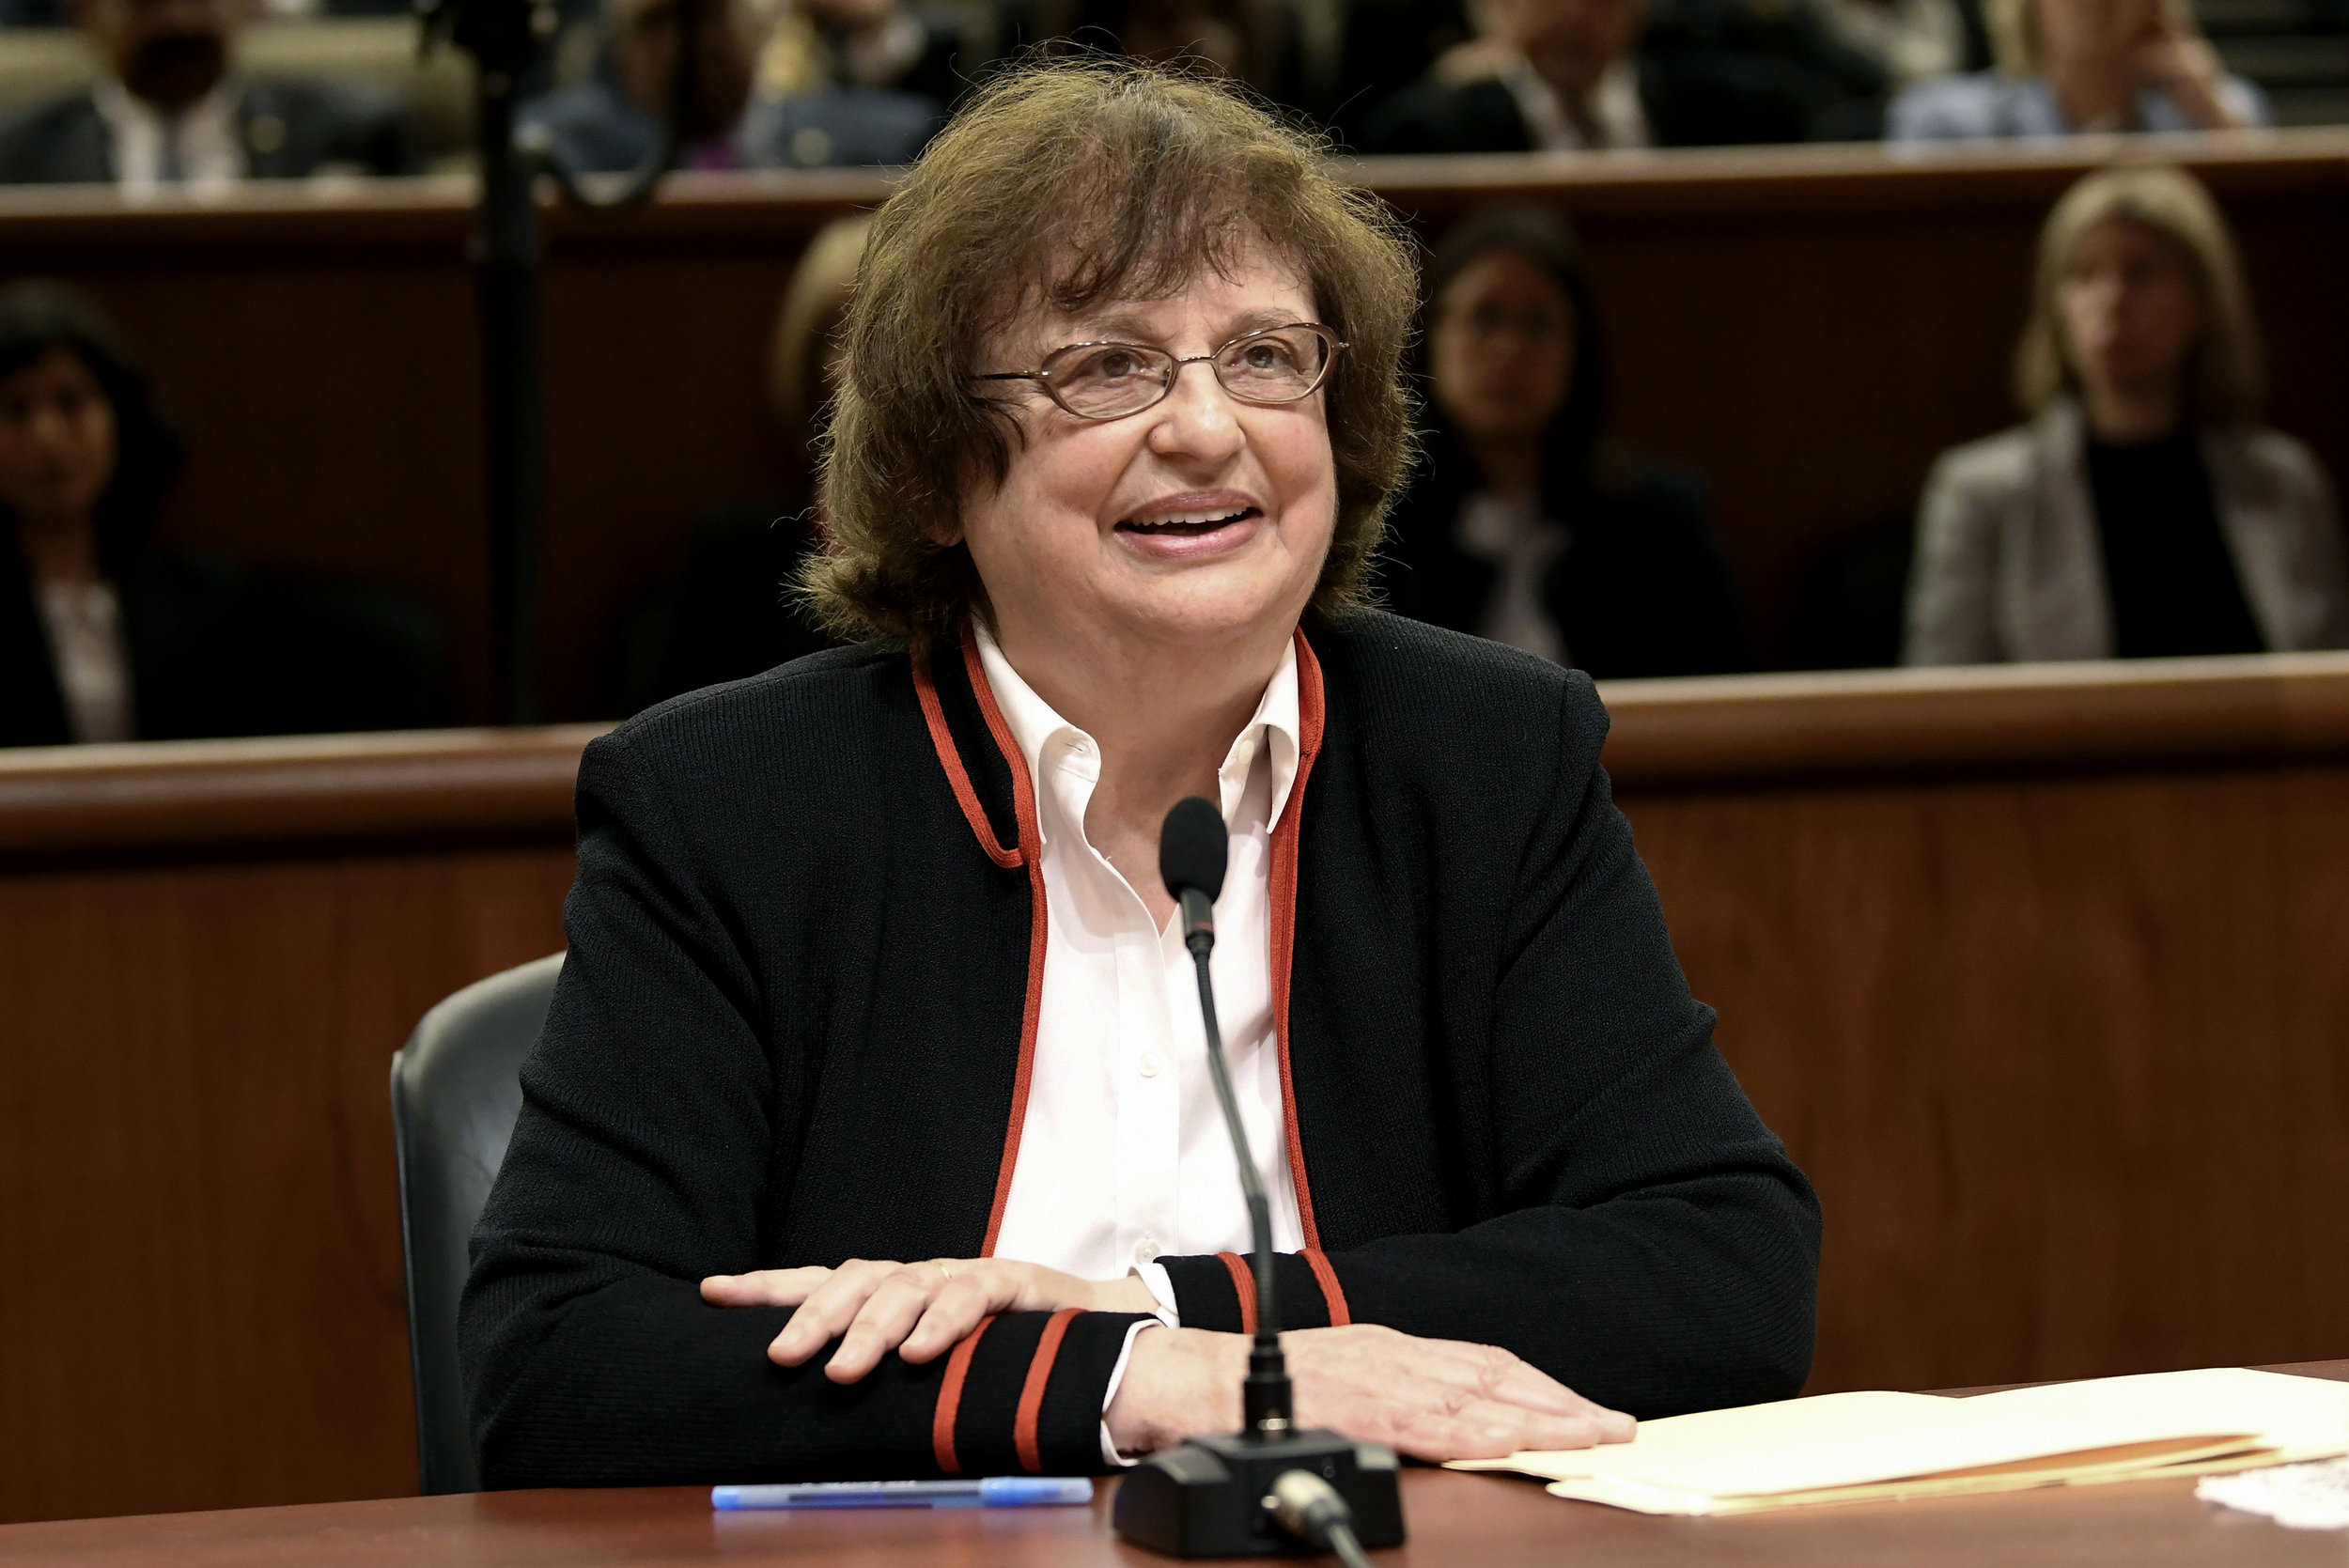 Barbara Underwood speaks to legislative leaders in Albany in May 2018. AP Photo/Hans Pennink, File.